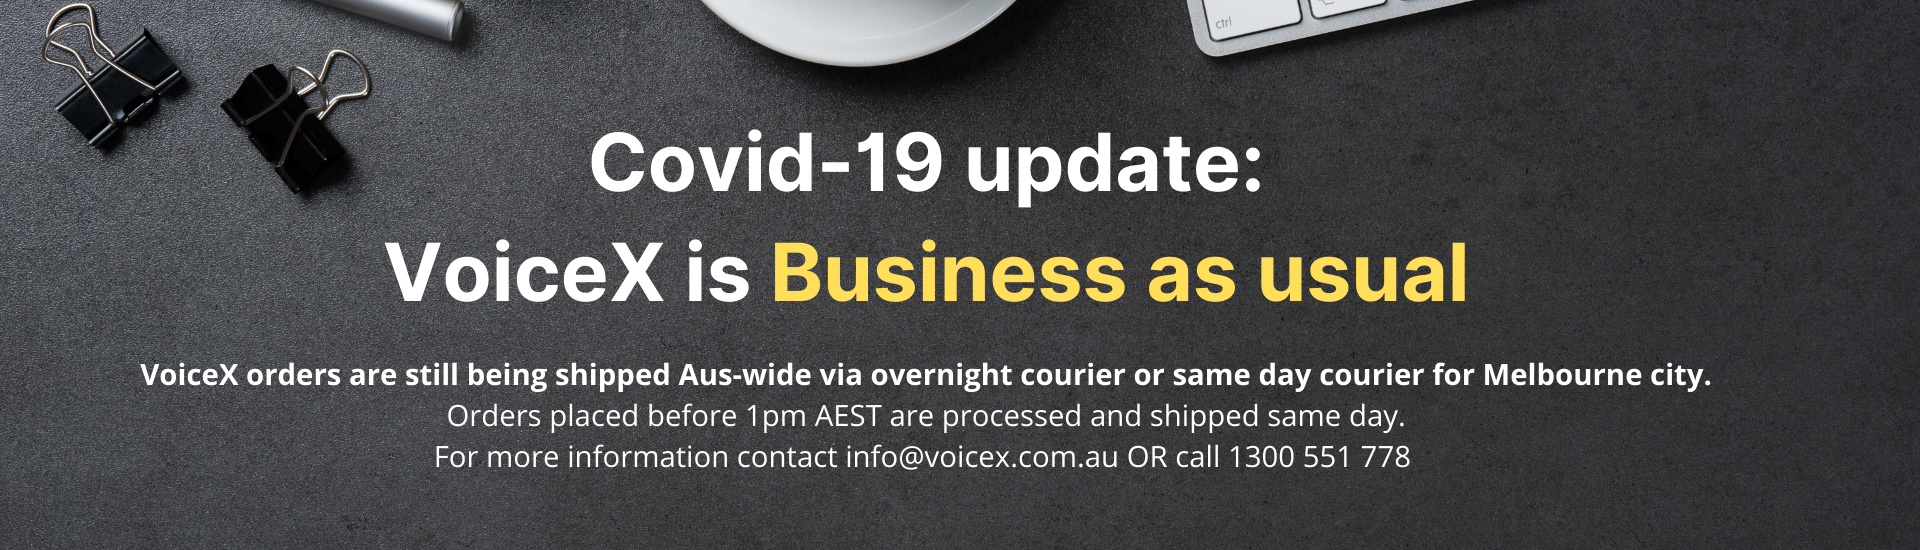 Covid-19 Update: Business as usual